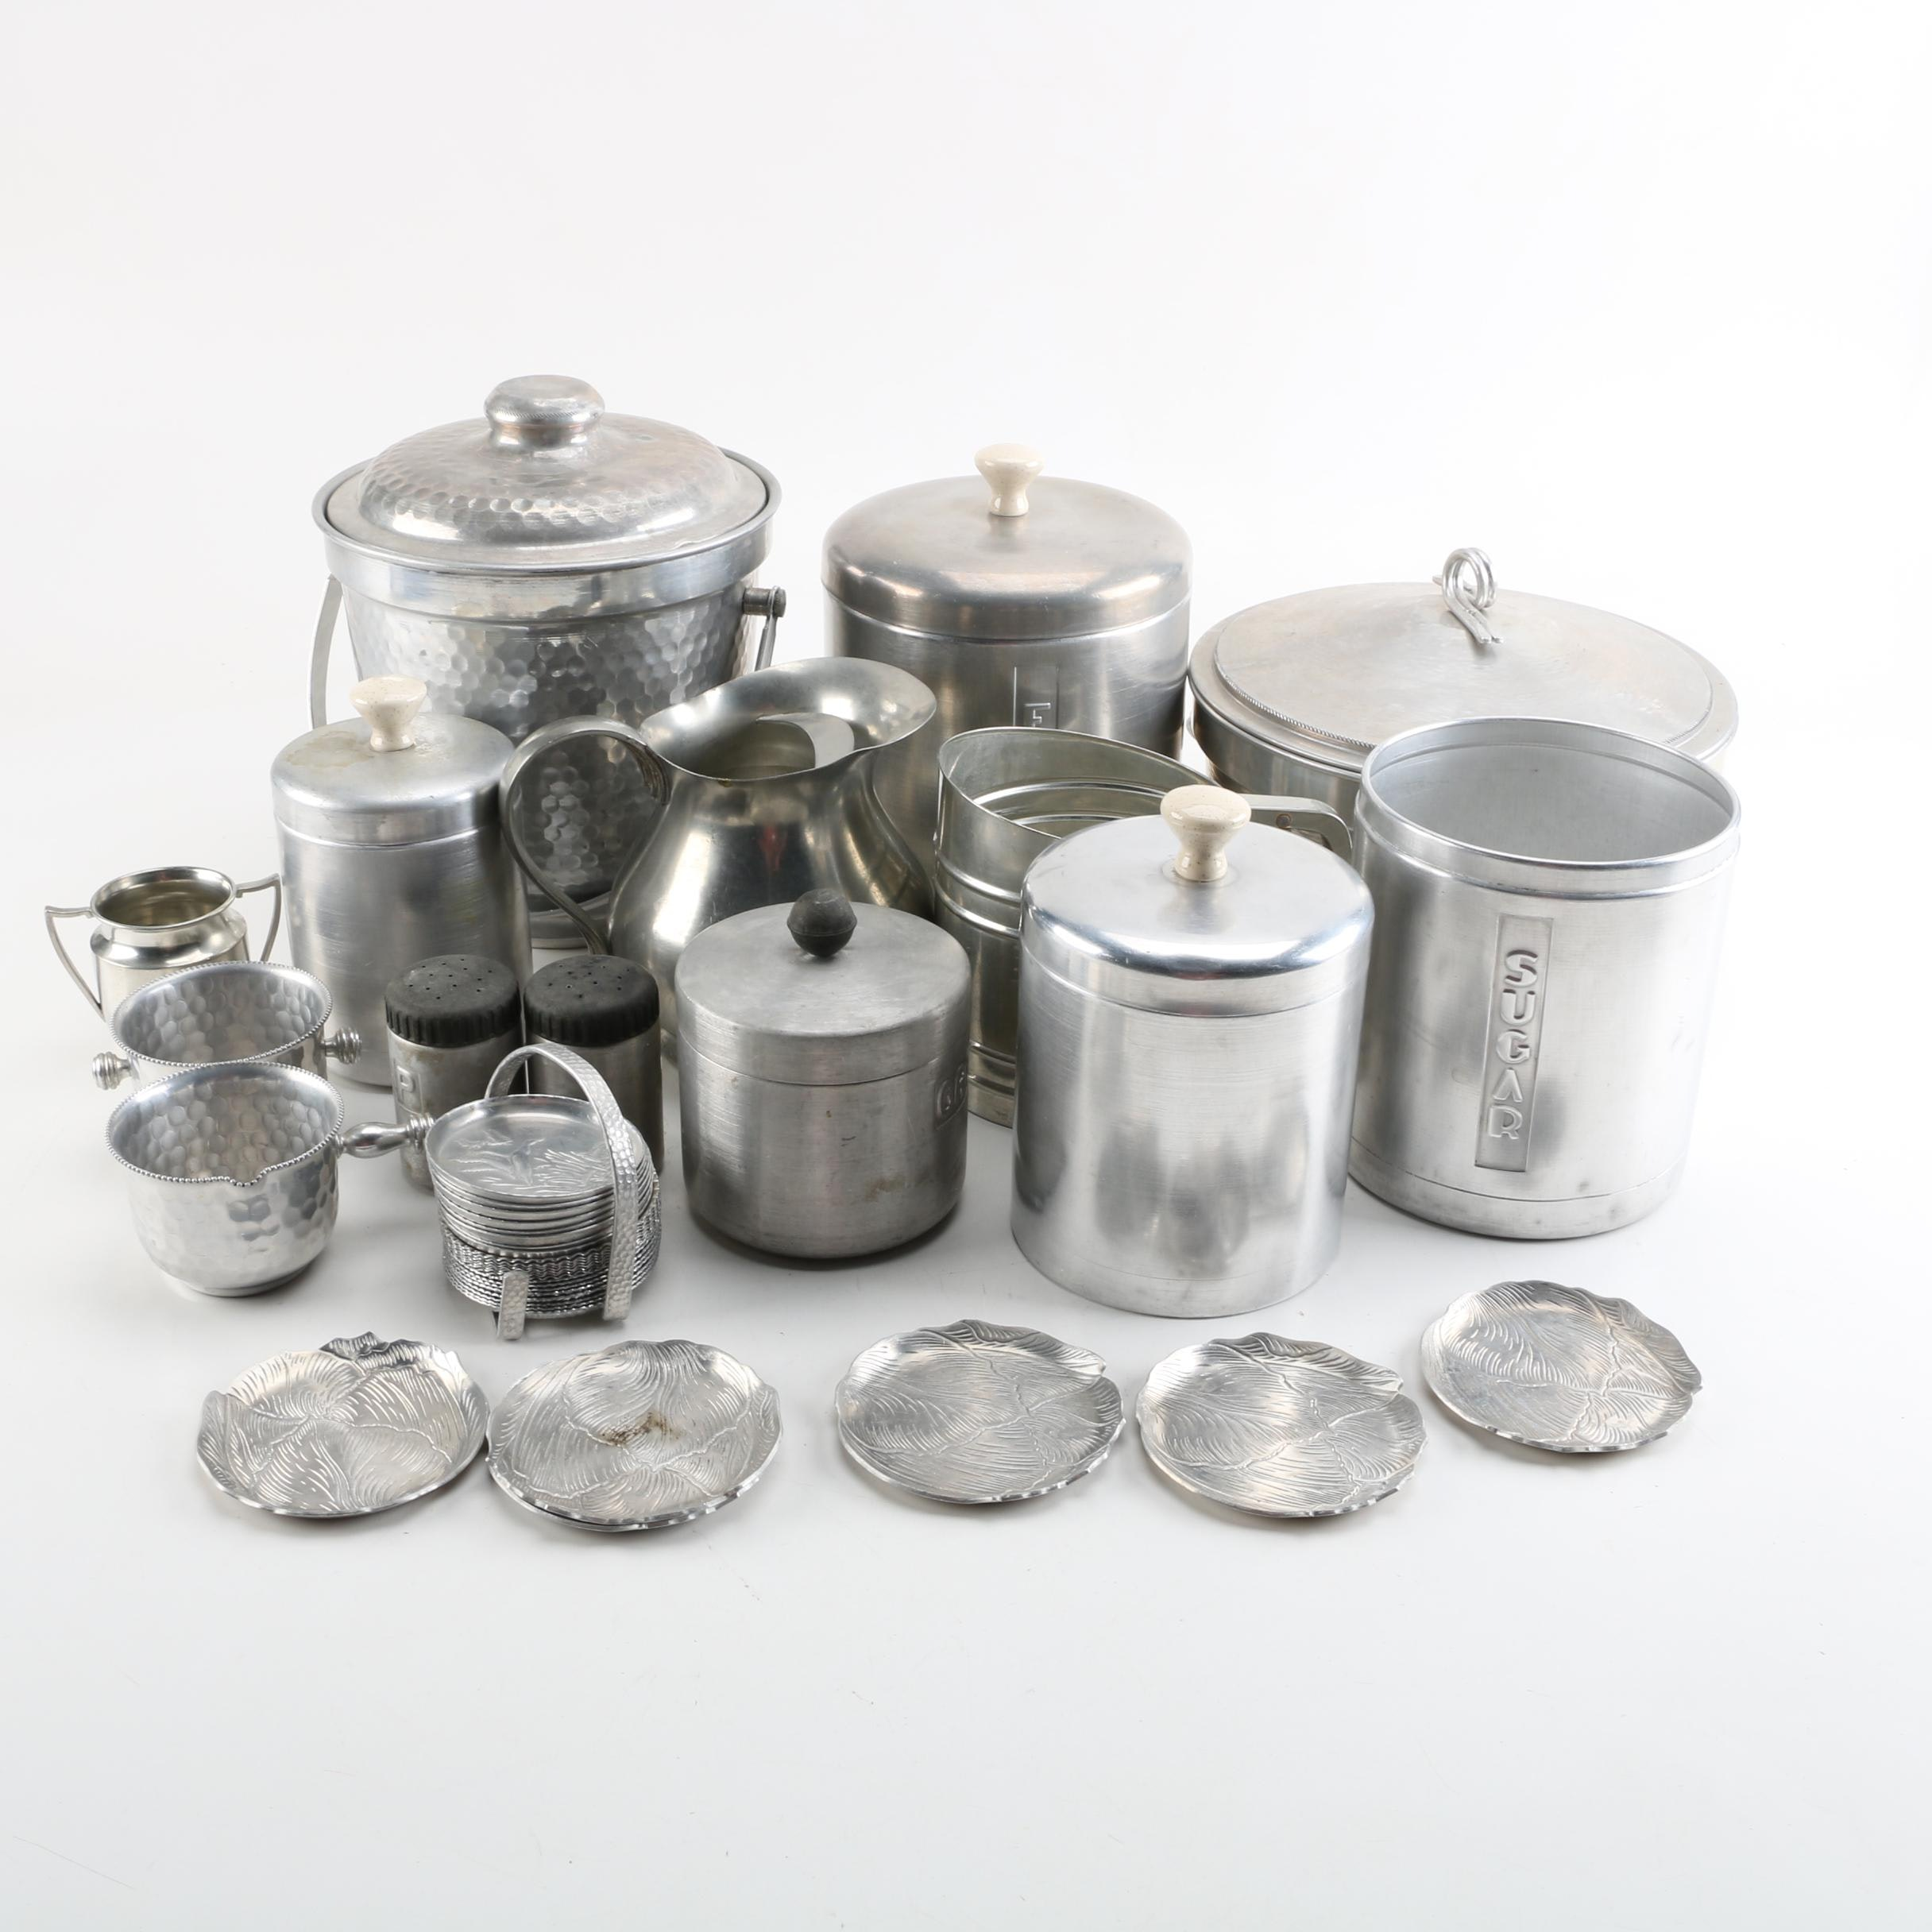 Collection of Mid Century Aluminum Kitchen Ware and More